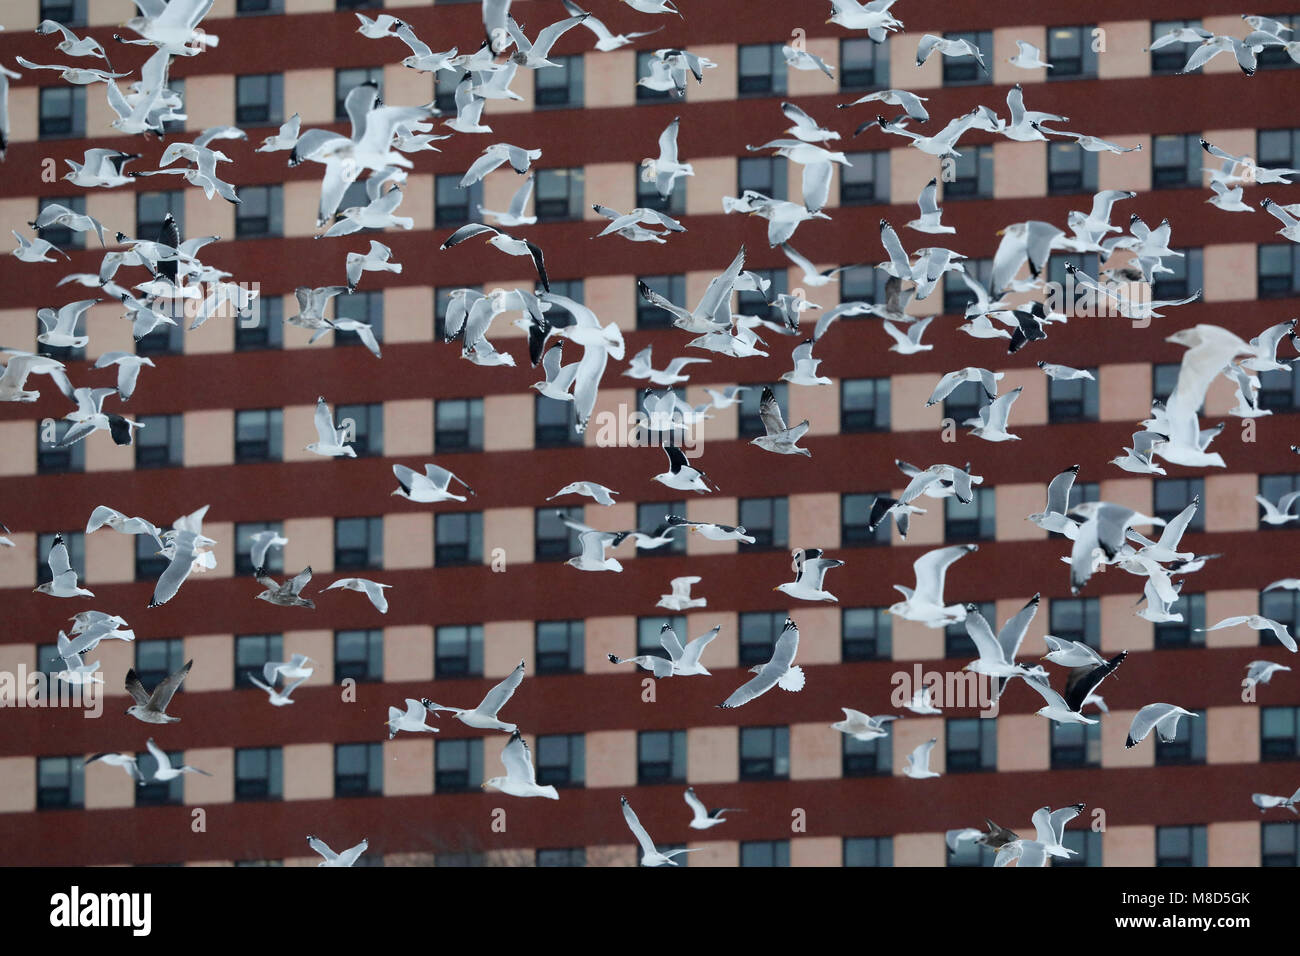 Vooral Amerikaanse Zilvermeeuwen in vlucht; Mostly American Herring Gulls (Larus smithonianus) in flight - Stock Image